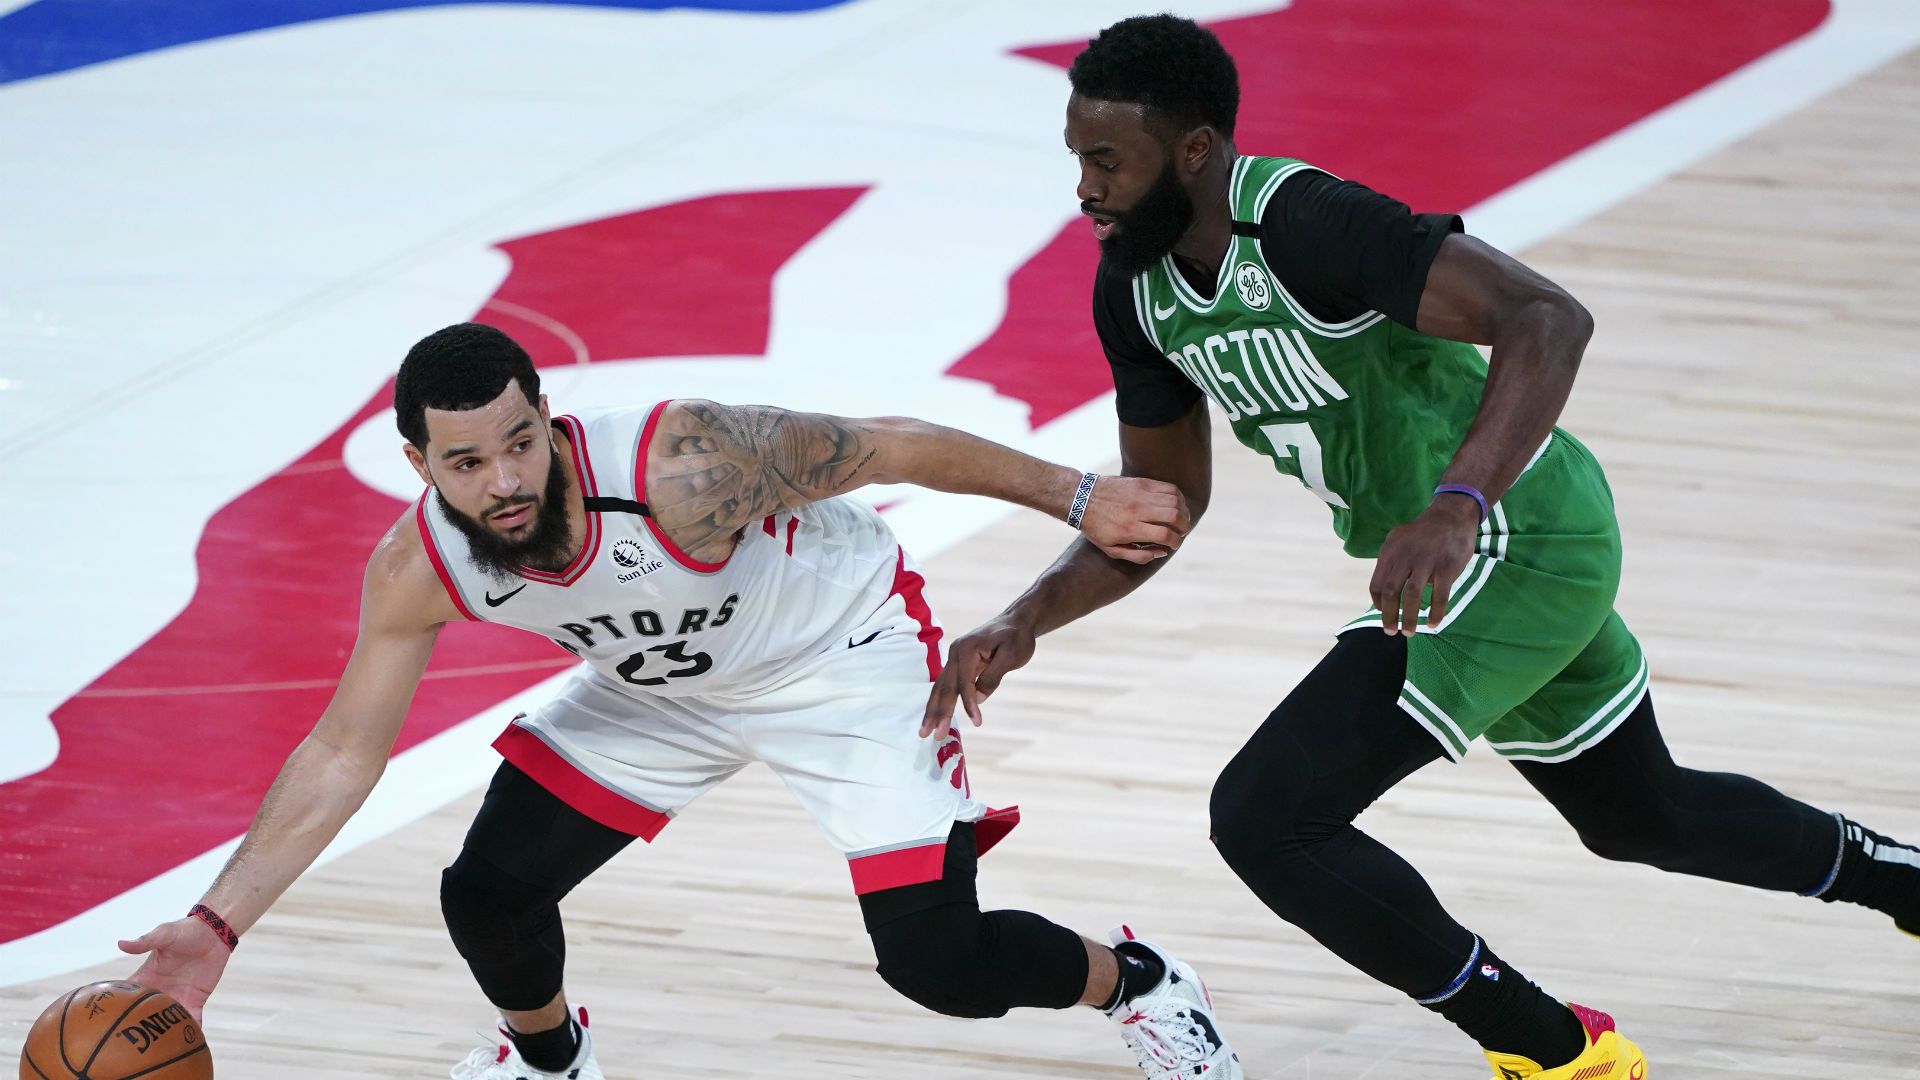 Celtics vs. Raptors predictions, picks, schedule more to know for 2020 NBA playoff series